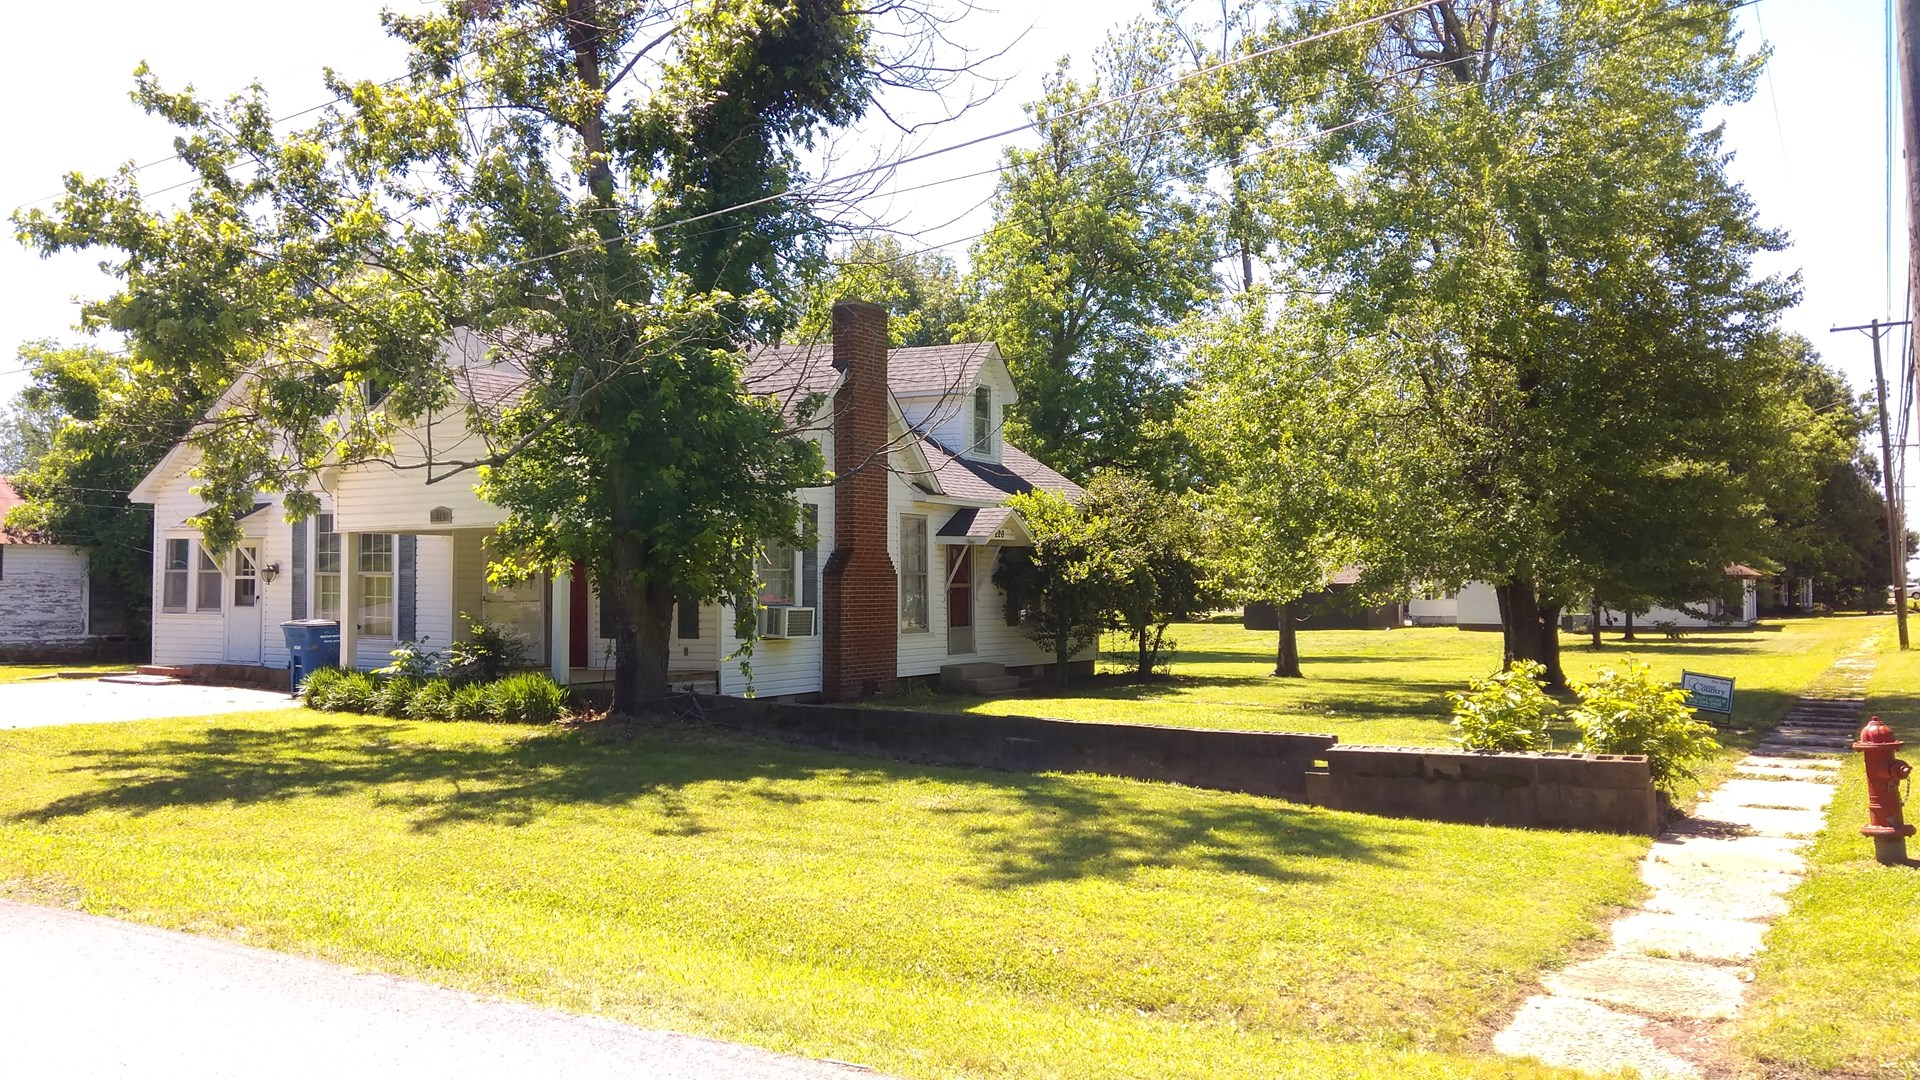 Beautiful home for sale w/ lots of charm in Rector, Arkansas